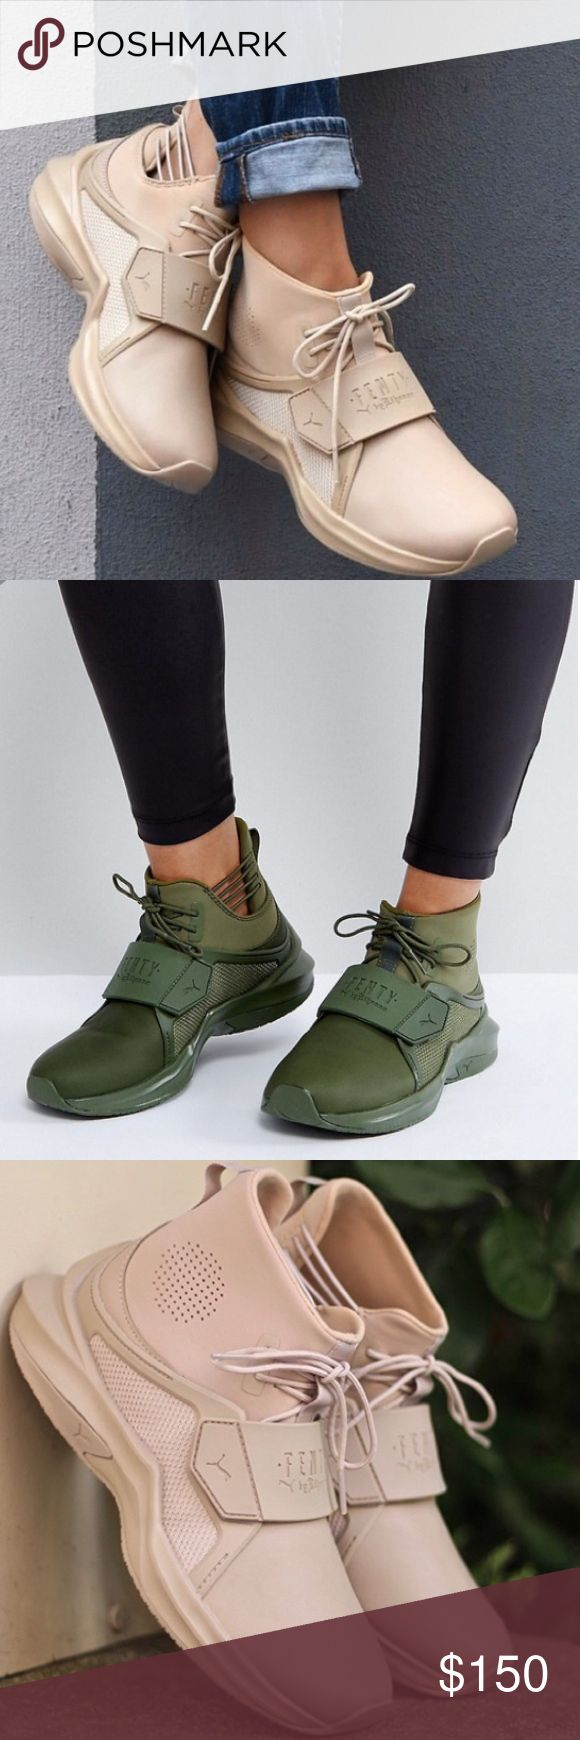 Fenty NEW WITH OUT TAGS! Fenty Hi trainer by  Rihanna ! Super fashion ! This listing is for the tan color  ! Available in tan and green color. New! Shoes Sneakers